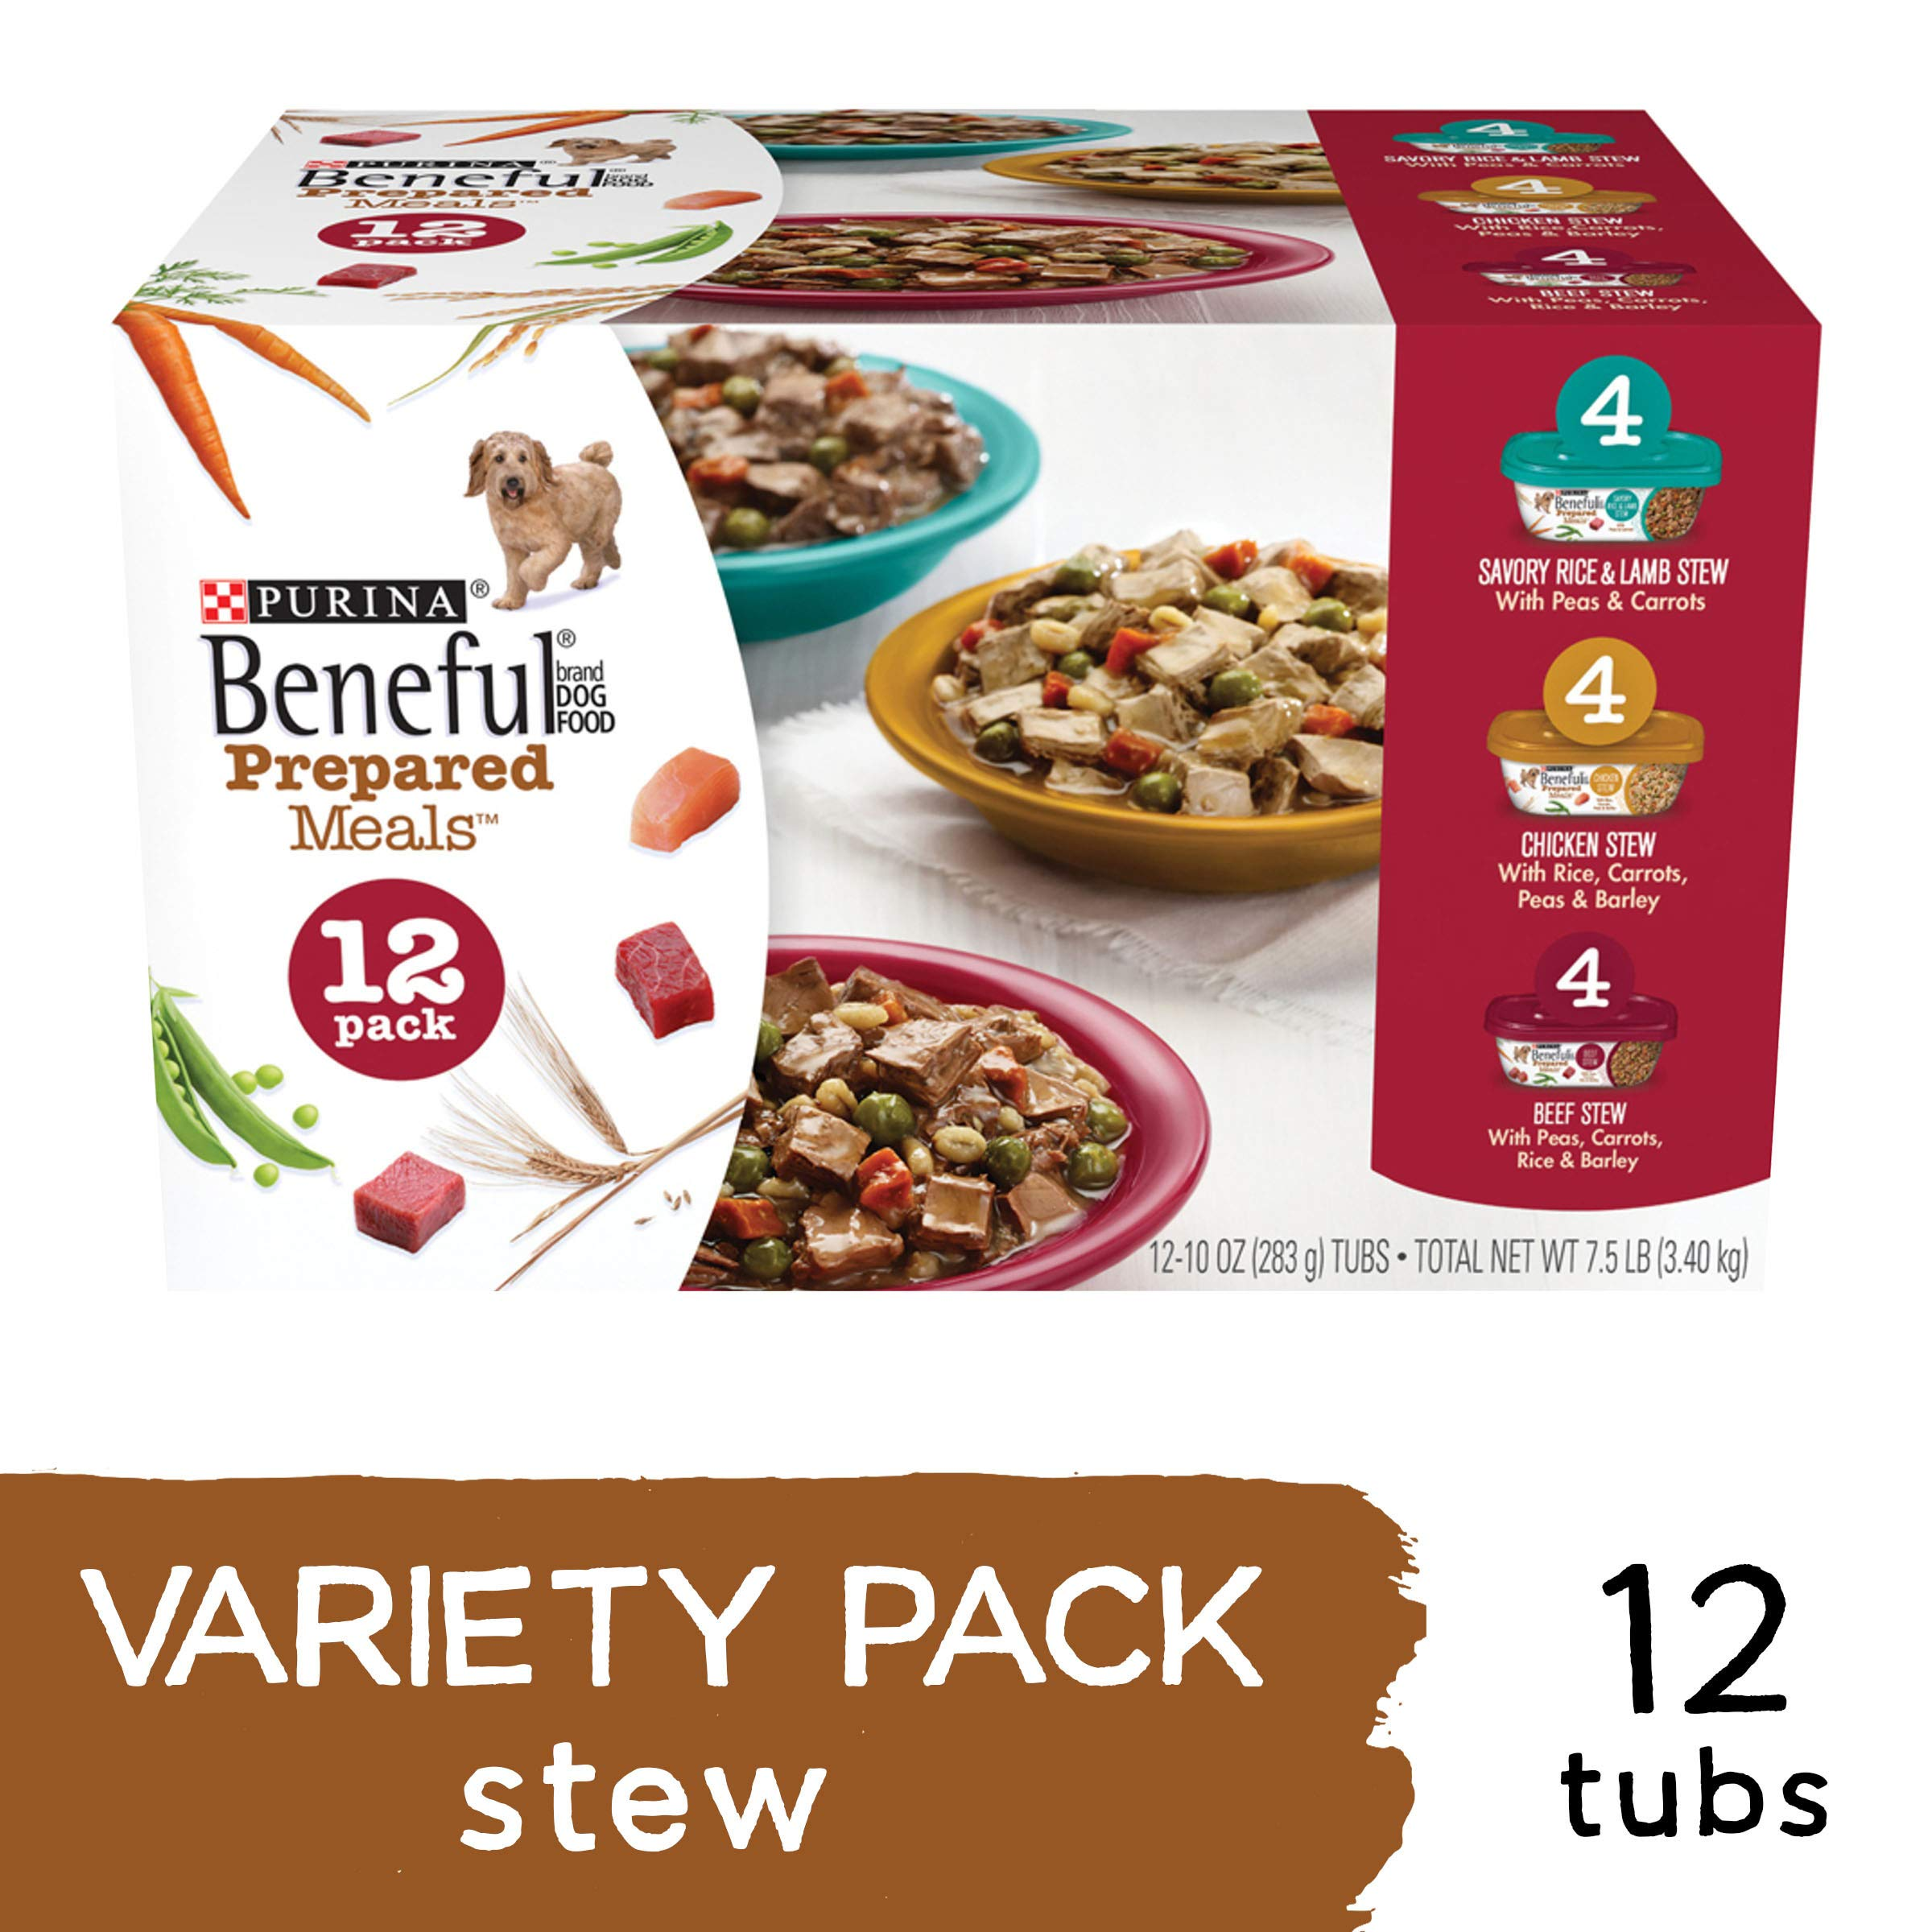 Purina Beneful Gravy Wet Dog Food Variety Pack, Prepared Meals Stew - (12) 10 oz. Tubs by Purina Beneful